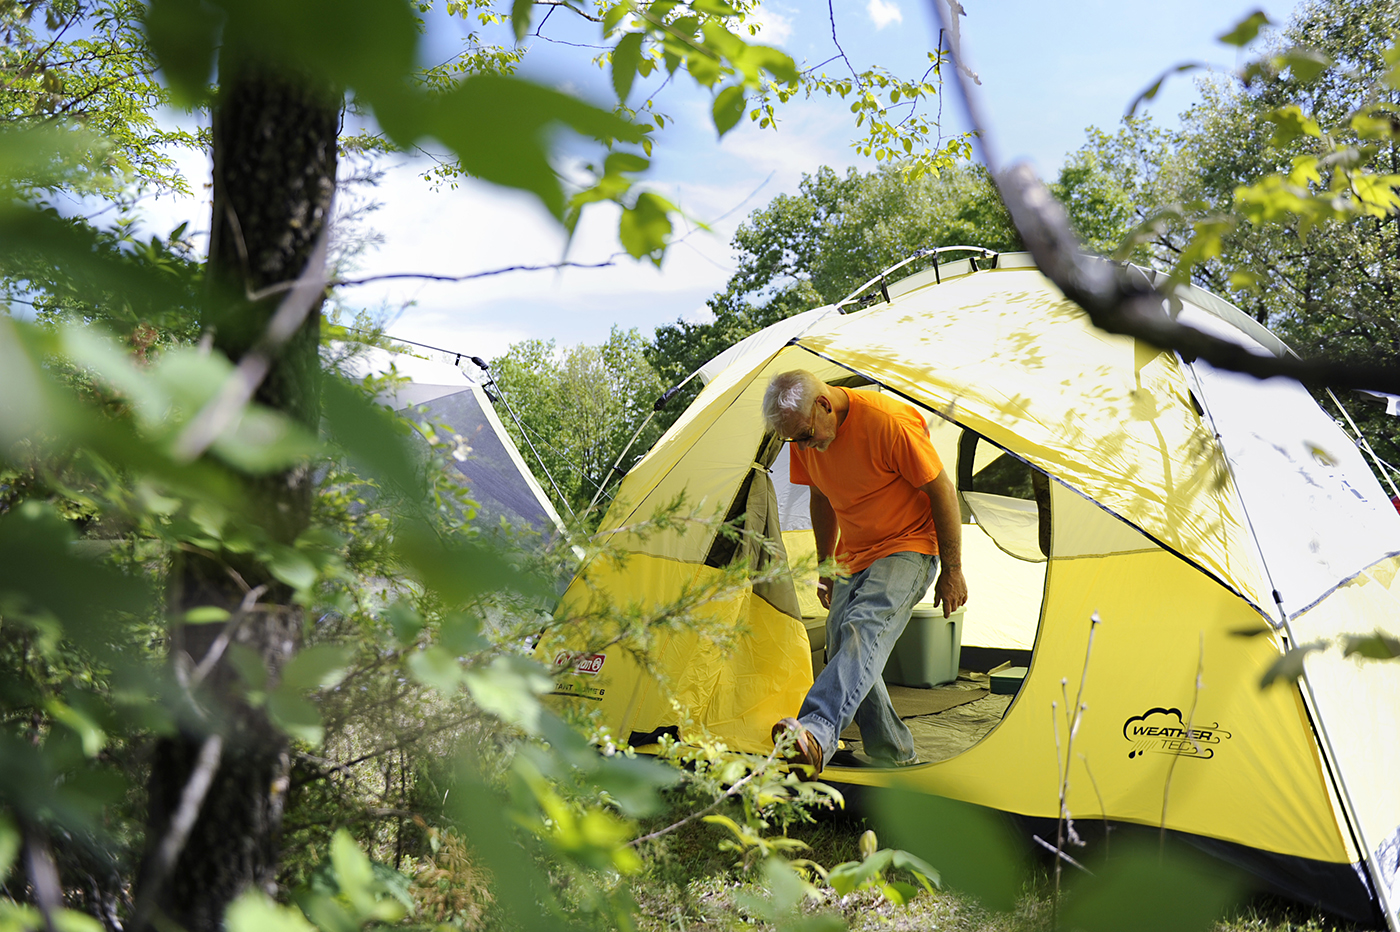 """George Bunyea sets up his tent on a portion of Oak Spirit Sanctuary's 160 acres in preparation for the fertility festival, Beltane, on Thursday, May 4, 2017. The sanctuary makes a large portion of its money from big festivals such as Beltane in the spring, and Harvest in the fall where participants pay an entry and camping fee. Bunyea thinks that the community welcoming outsiders is a positive and necessary step for the church. """"We're moving toward inclusive and not exclusive. Exclusive was getting' us broke. And it's done that to every pagan place if they haven't survived. And they did it for years because they're afraid of the outside world,"""" Bunyea said."""